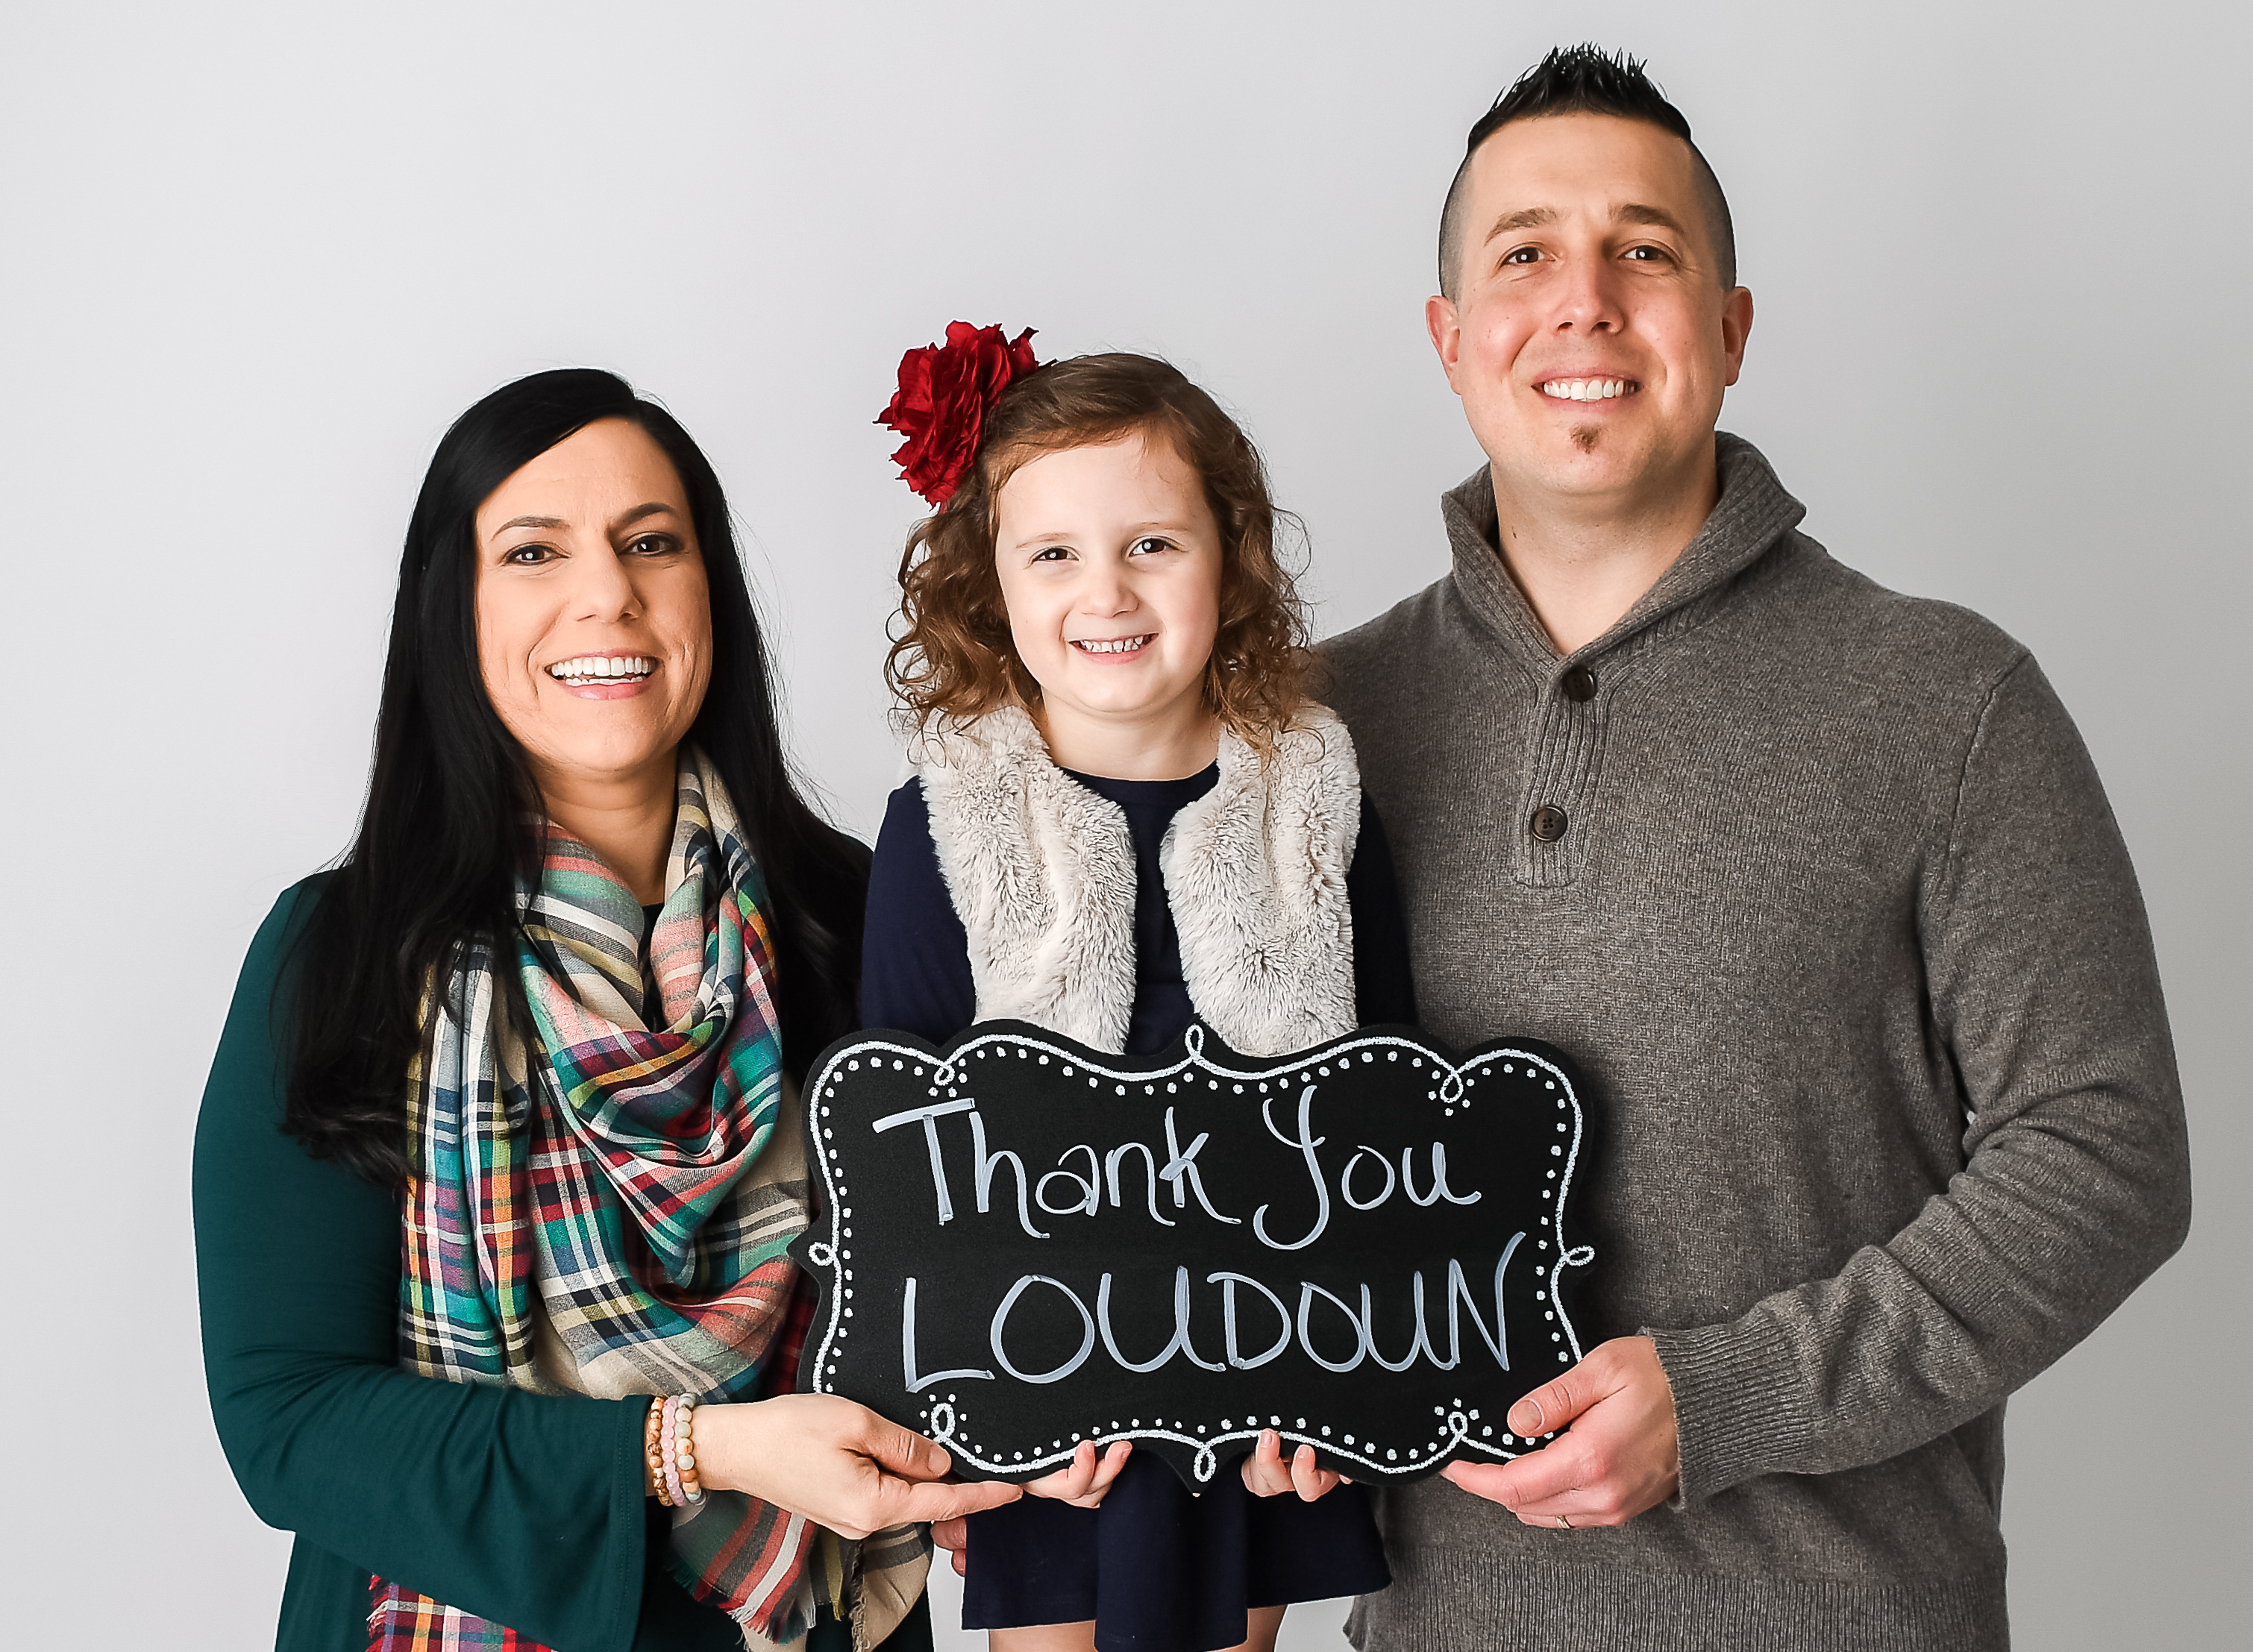 Loudoun Family Wellness Voted Best of Loudoun 2019